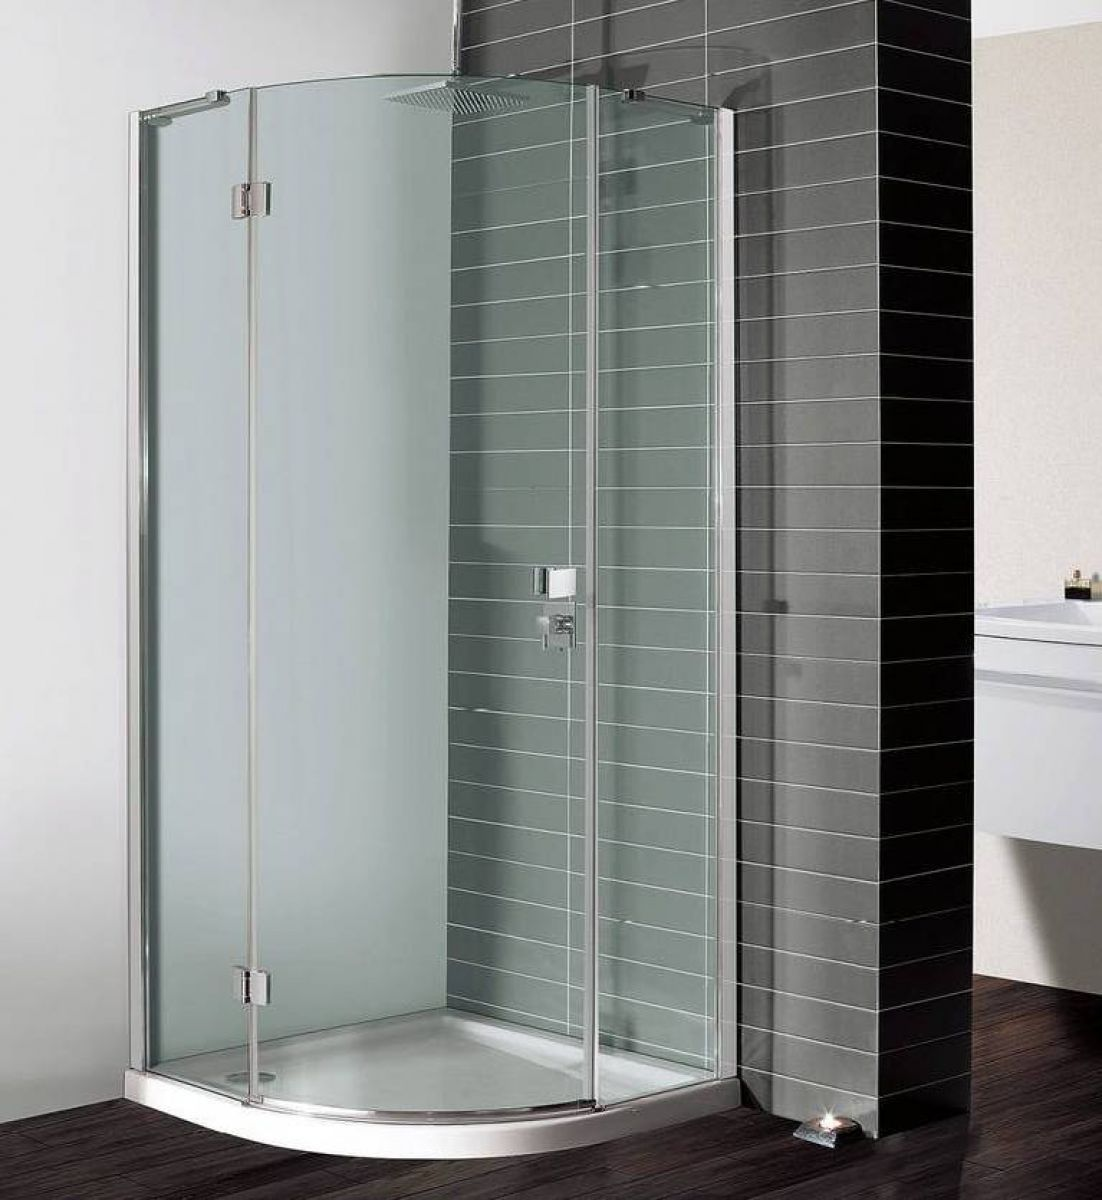 Simpsons design quadrant single hinged shower door uk for Door quadrant